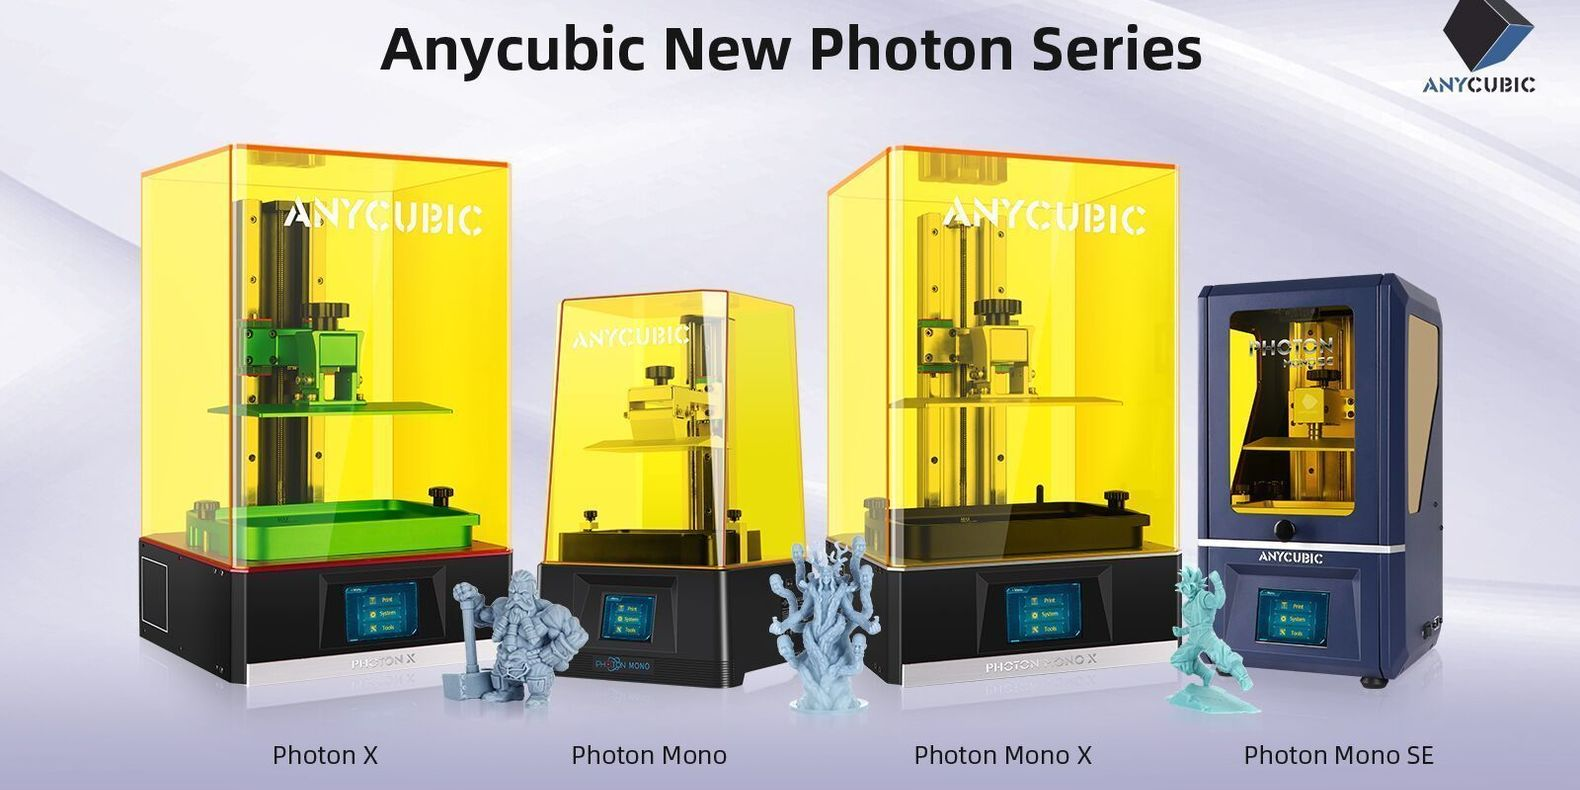 New Product Launch at Anycubic 5th year Anniversary - Photon Mono, Photon Mono X, Photon Mono SE, Photon X and More